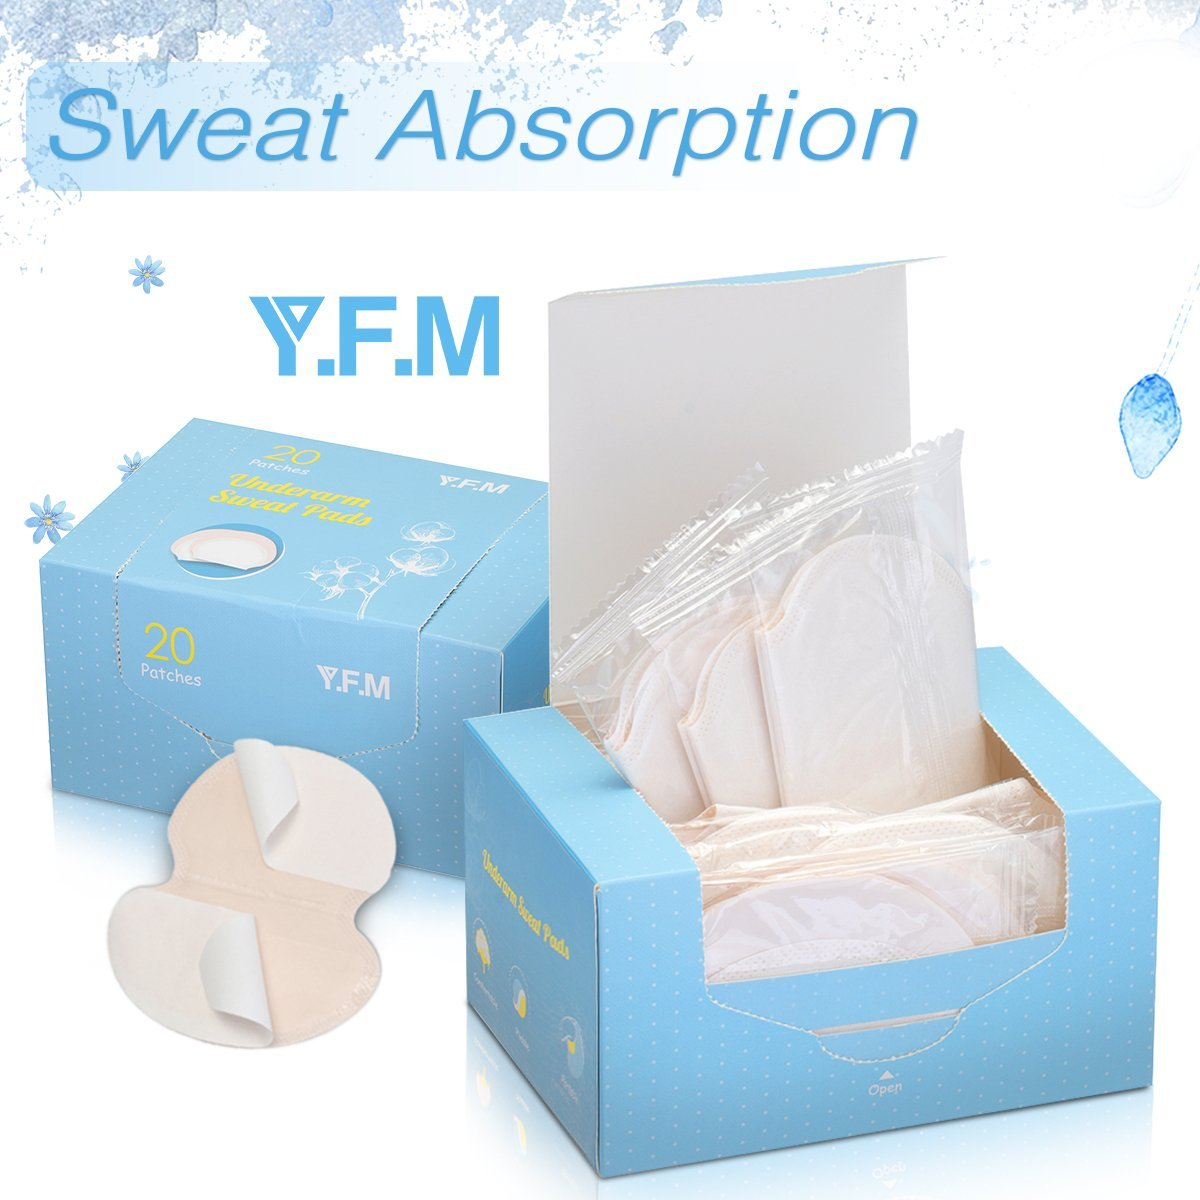 Underarm Sweat Pads, Y.F.M Underarm Antiperspirant Sticker Absorbing Sweat Pads non-woven fabric Disposable Shield Dress Shields Sweat Guard for Women and Men [40 Pack/20 Pairs] by Y.F.M (Image #1)